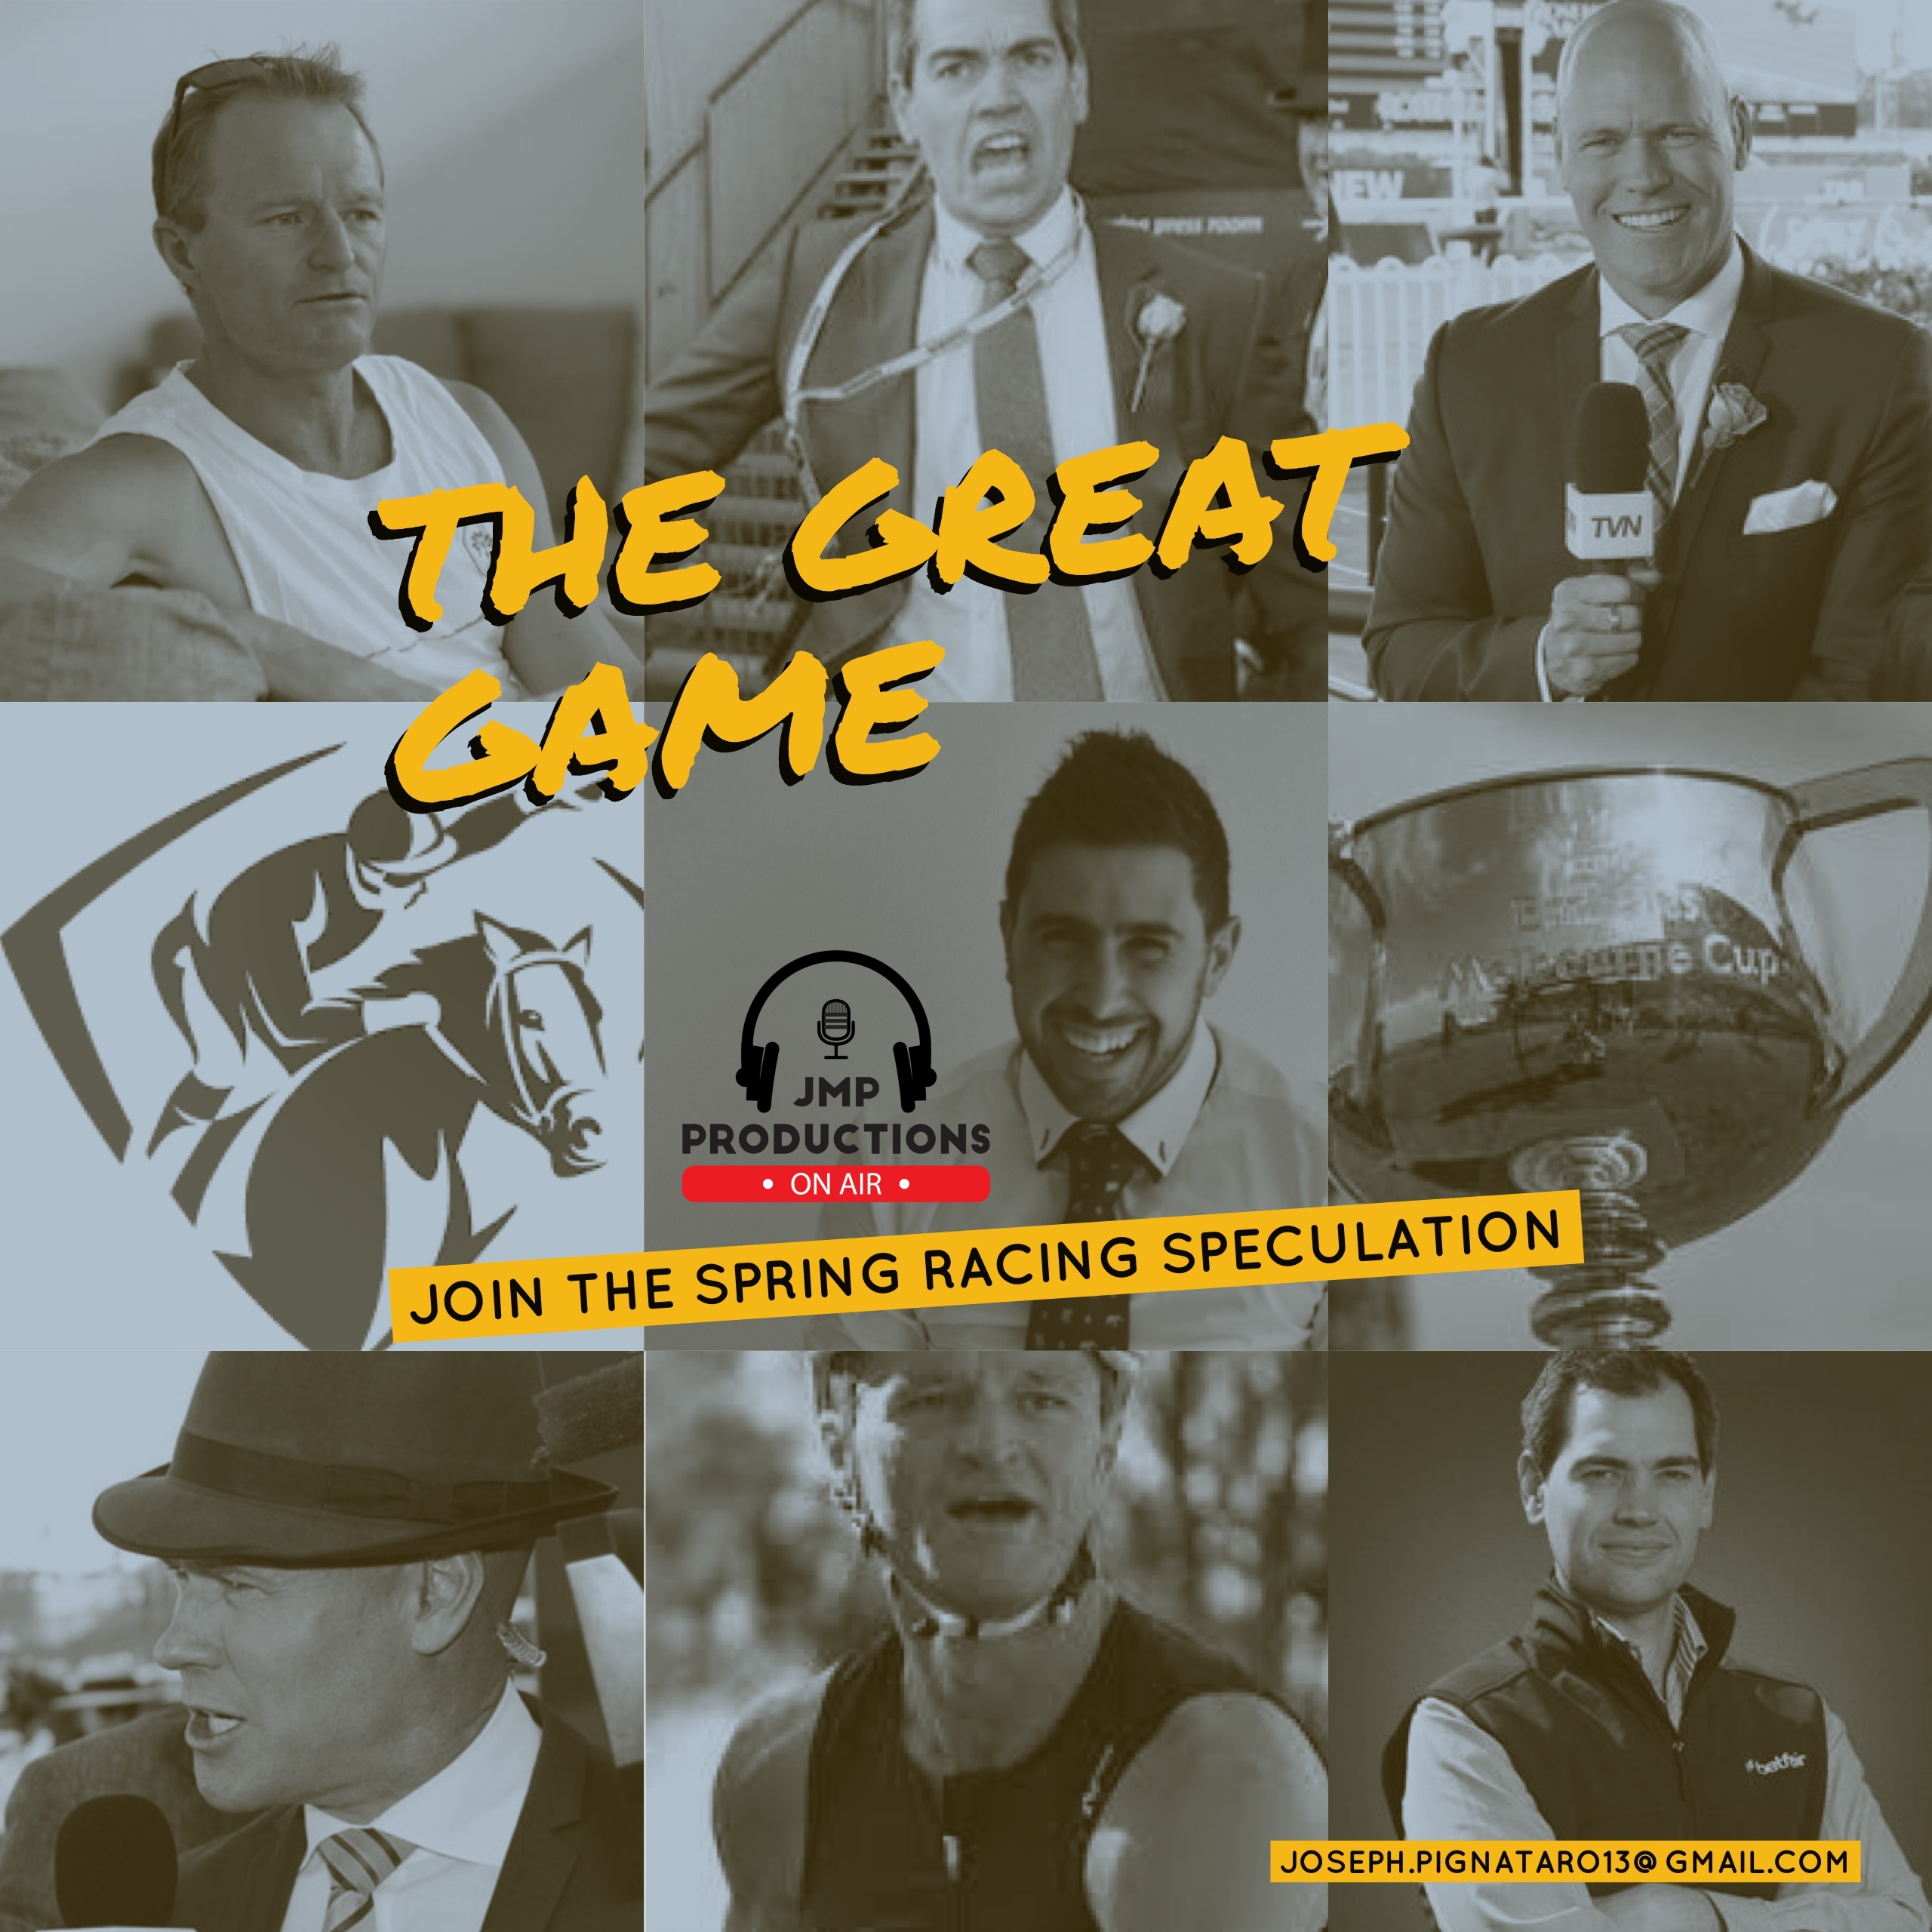 Episode 16 - The Great Game (April 4, 2019)